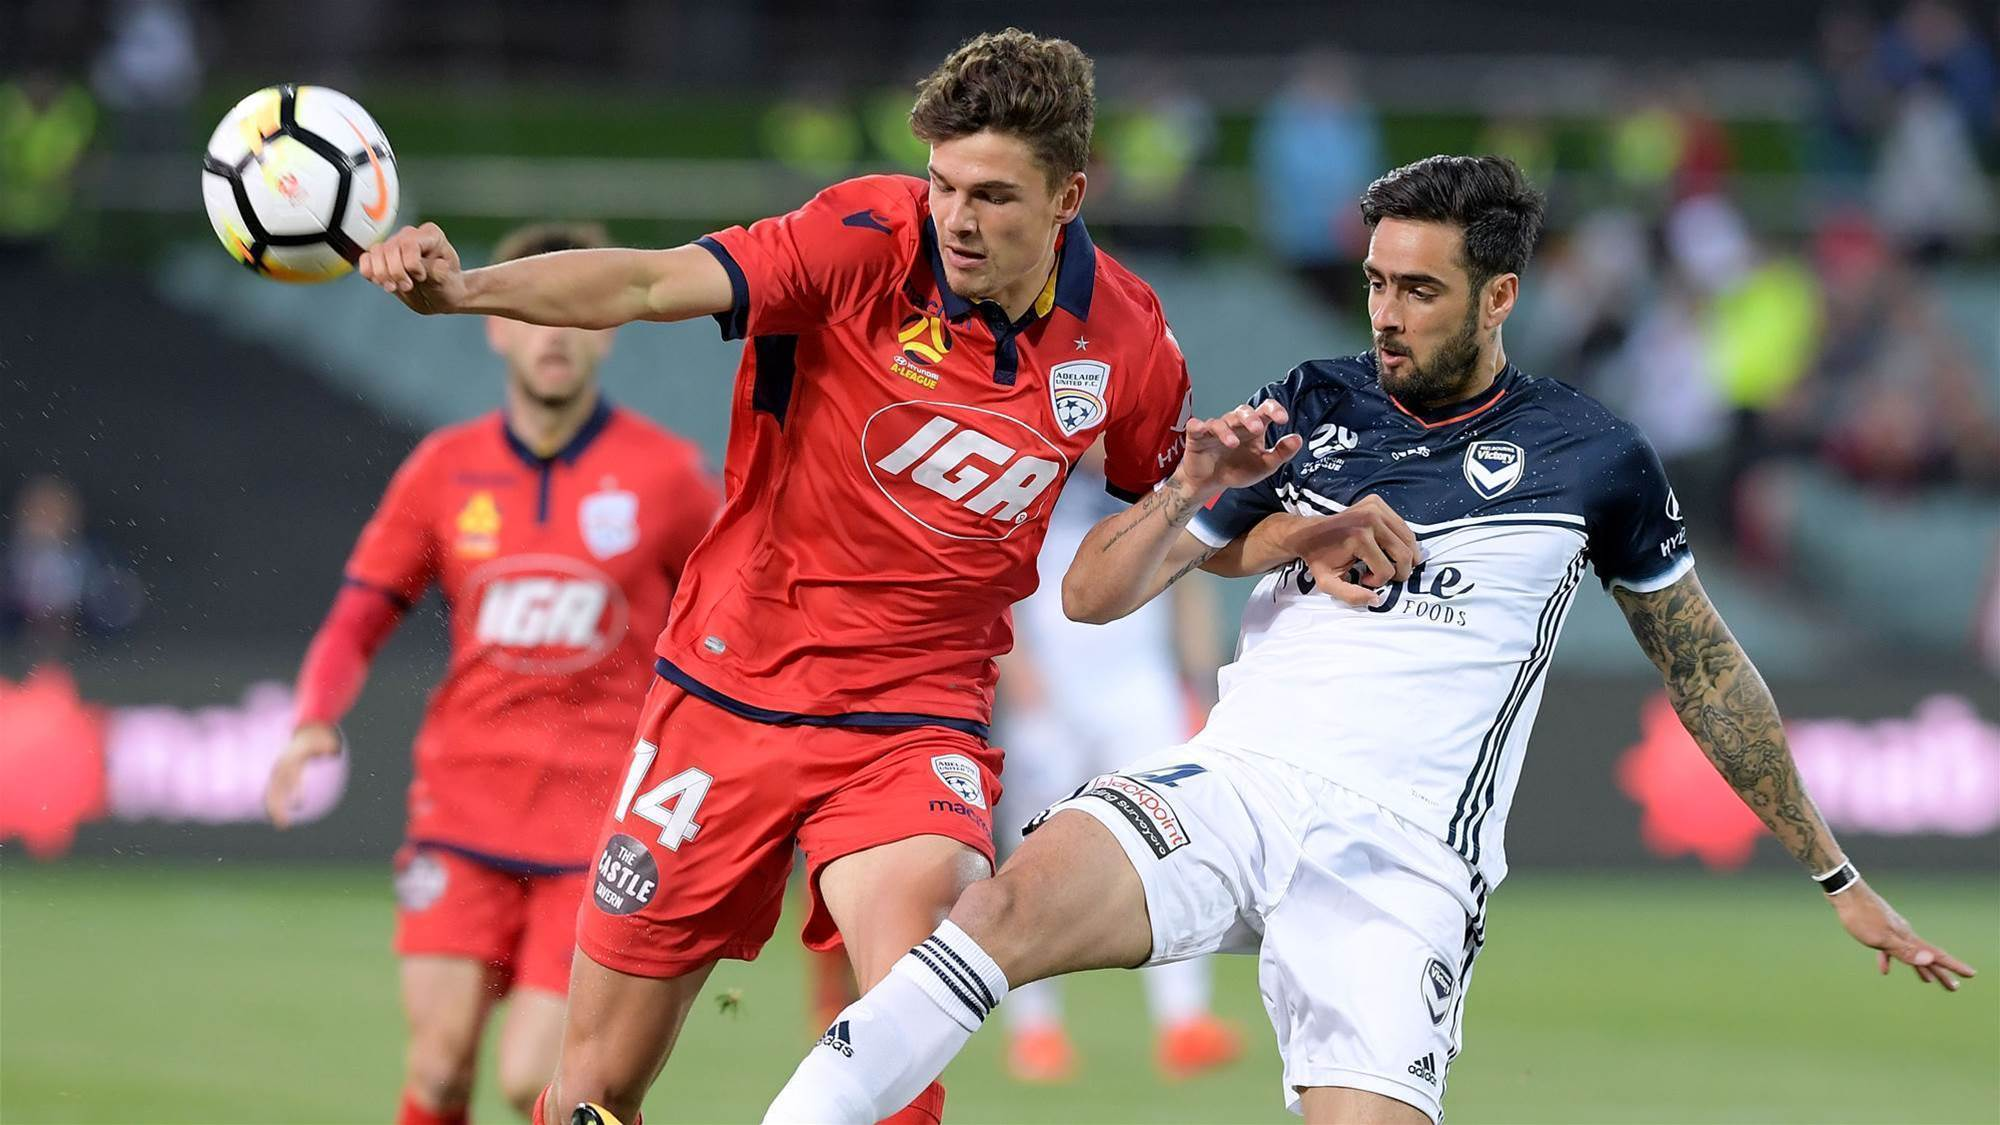 Blackwood: Give A-League youth a chance